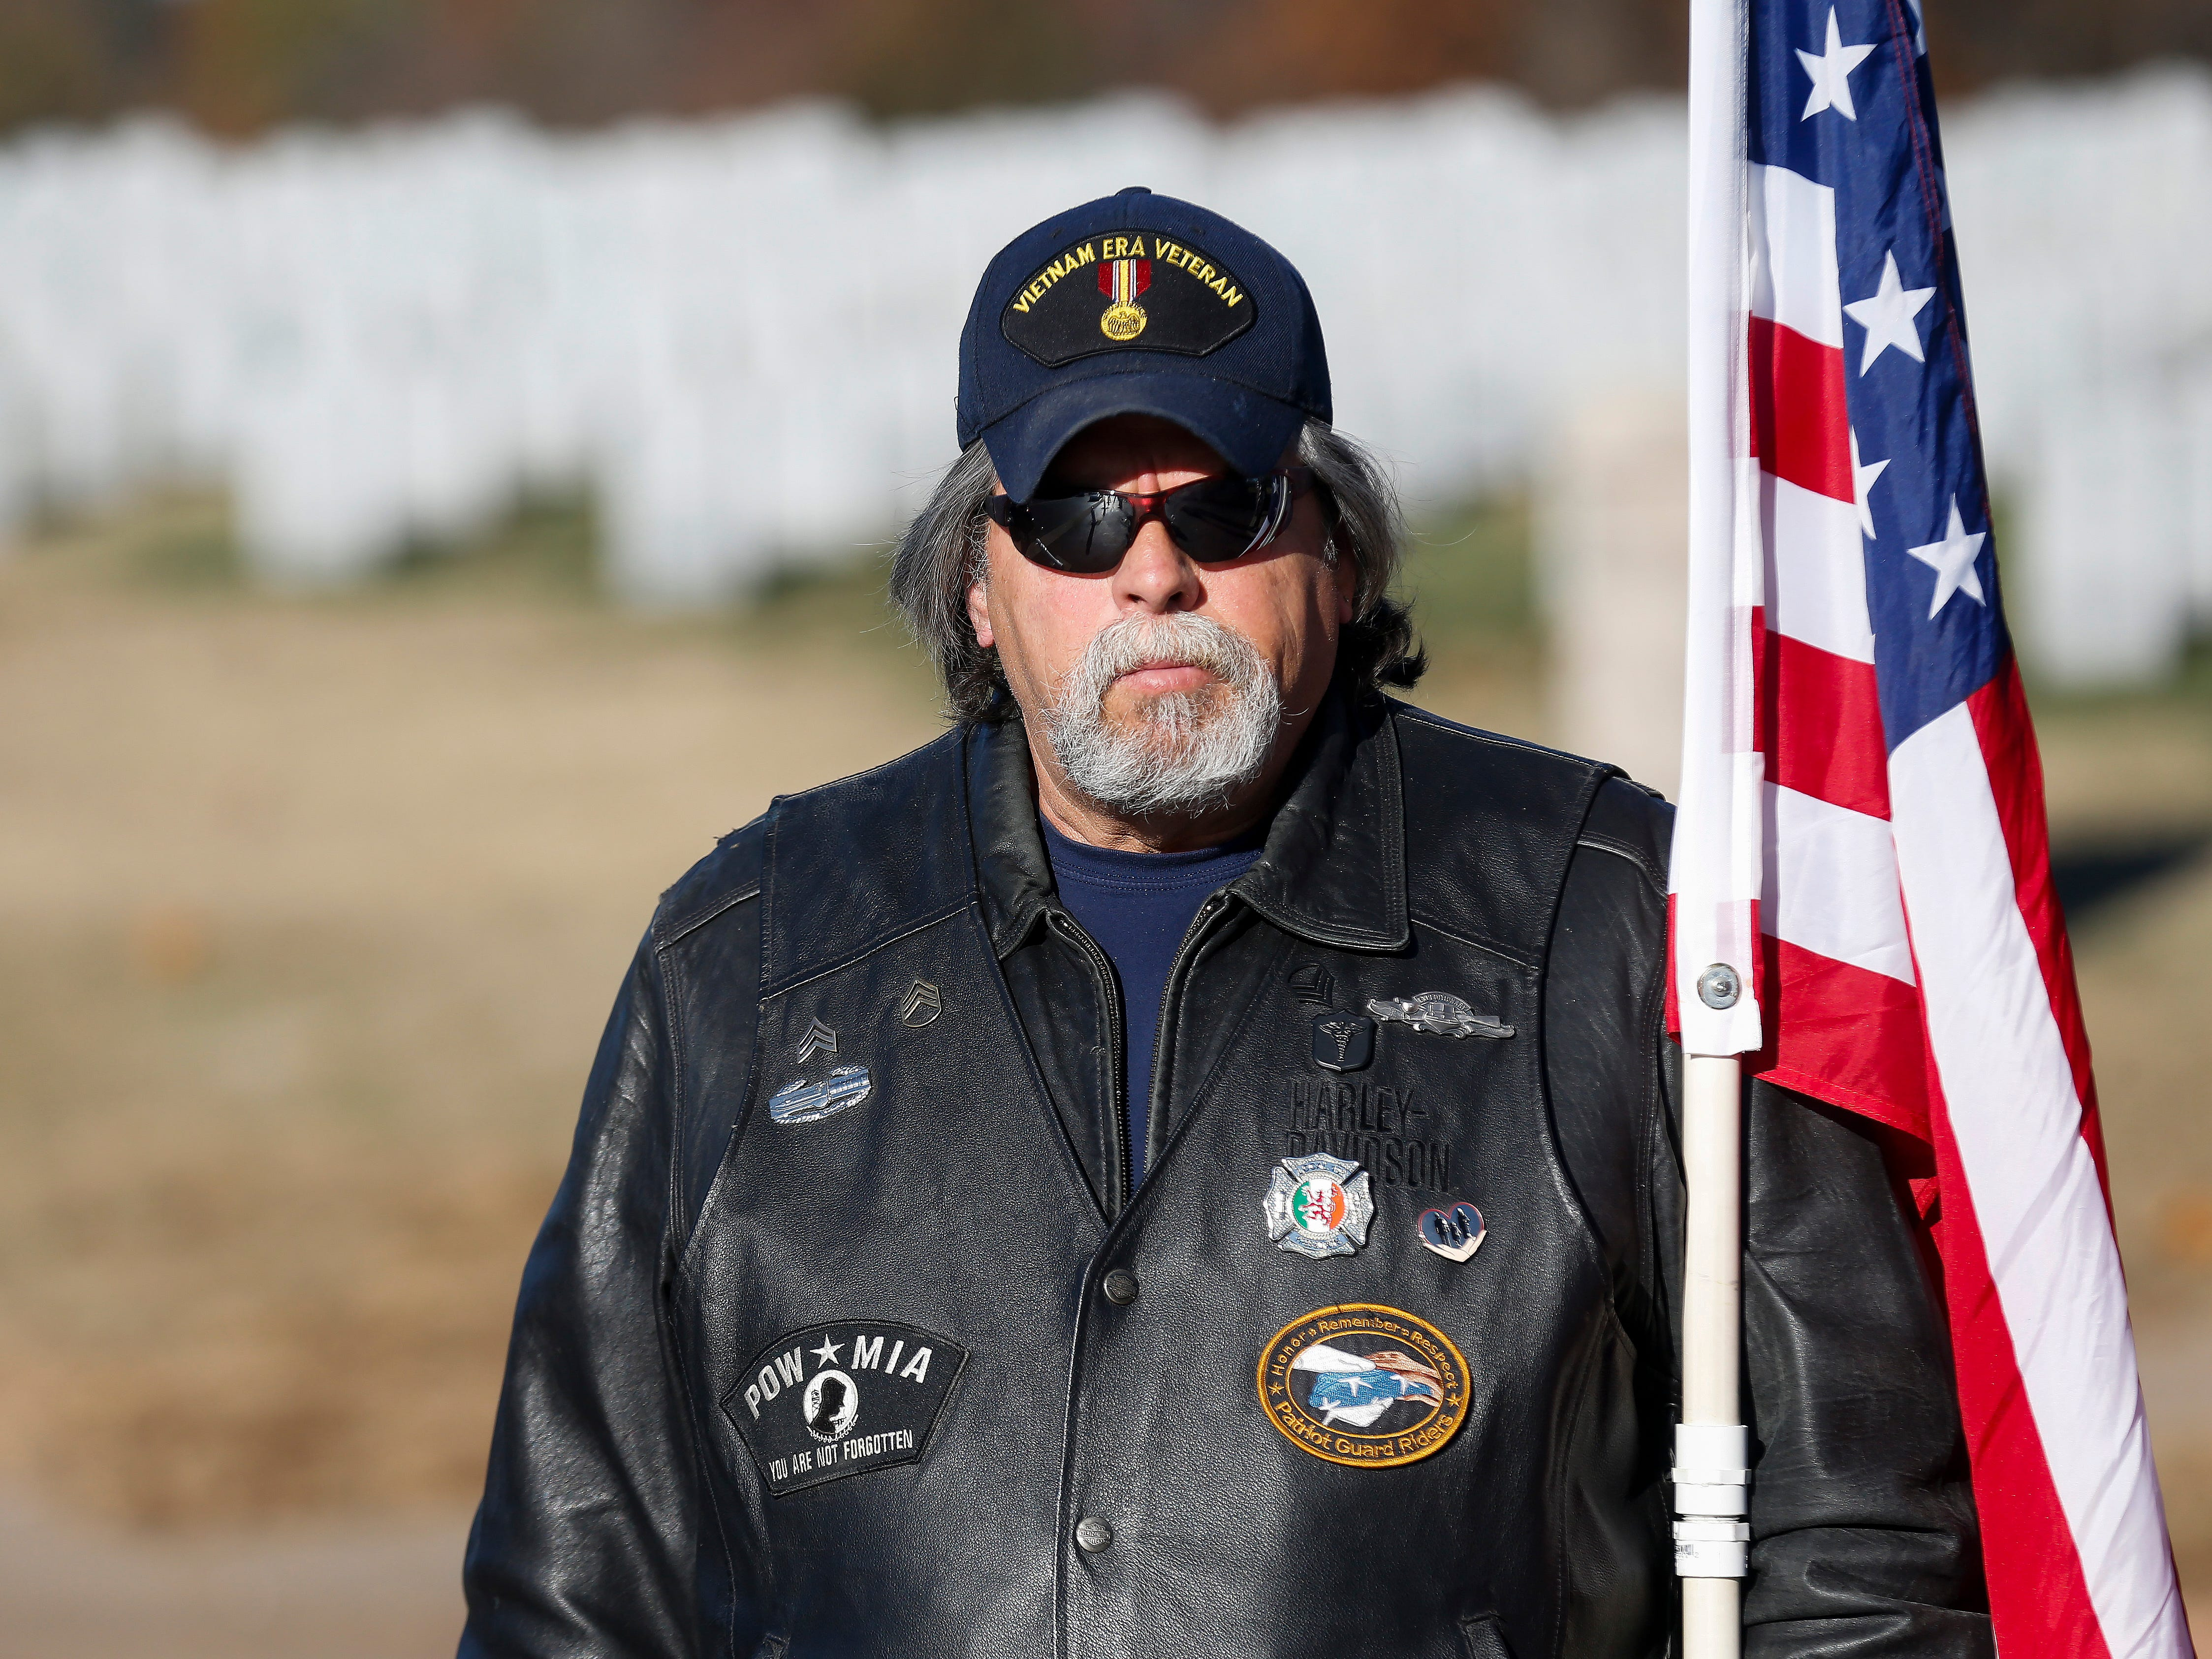 Paul McGuire, a member of the Patriot Guard Riders, stands outside of the chapel during the funeral of Army veteran Michael Hiers at the Missouri Veterans Cemetery on Friday, Nov. 16, 2018.